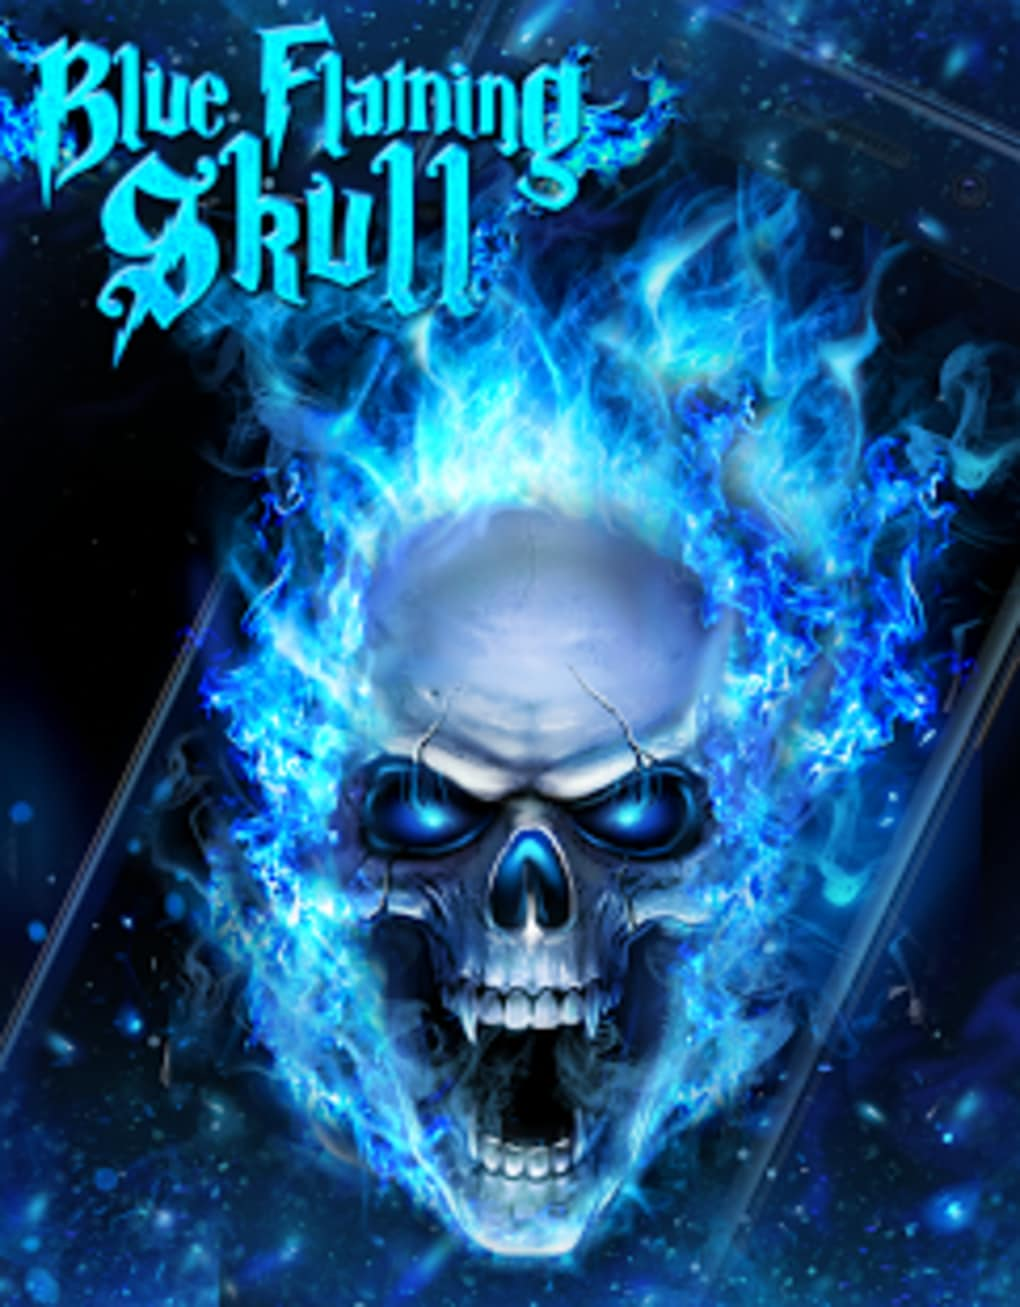 ... Blue Fire Skull Live Wallpaper